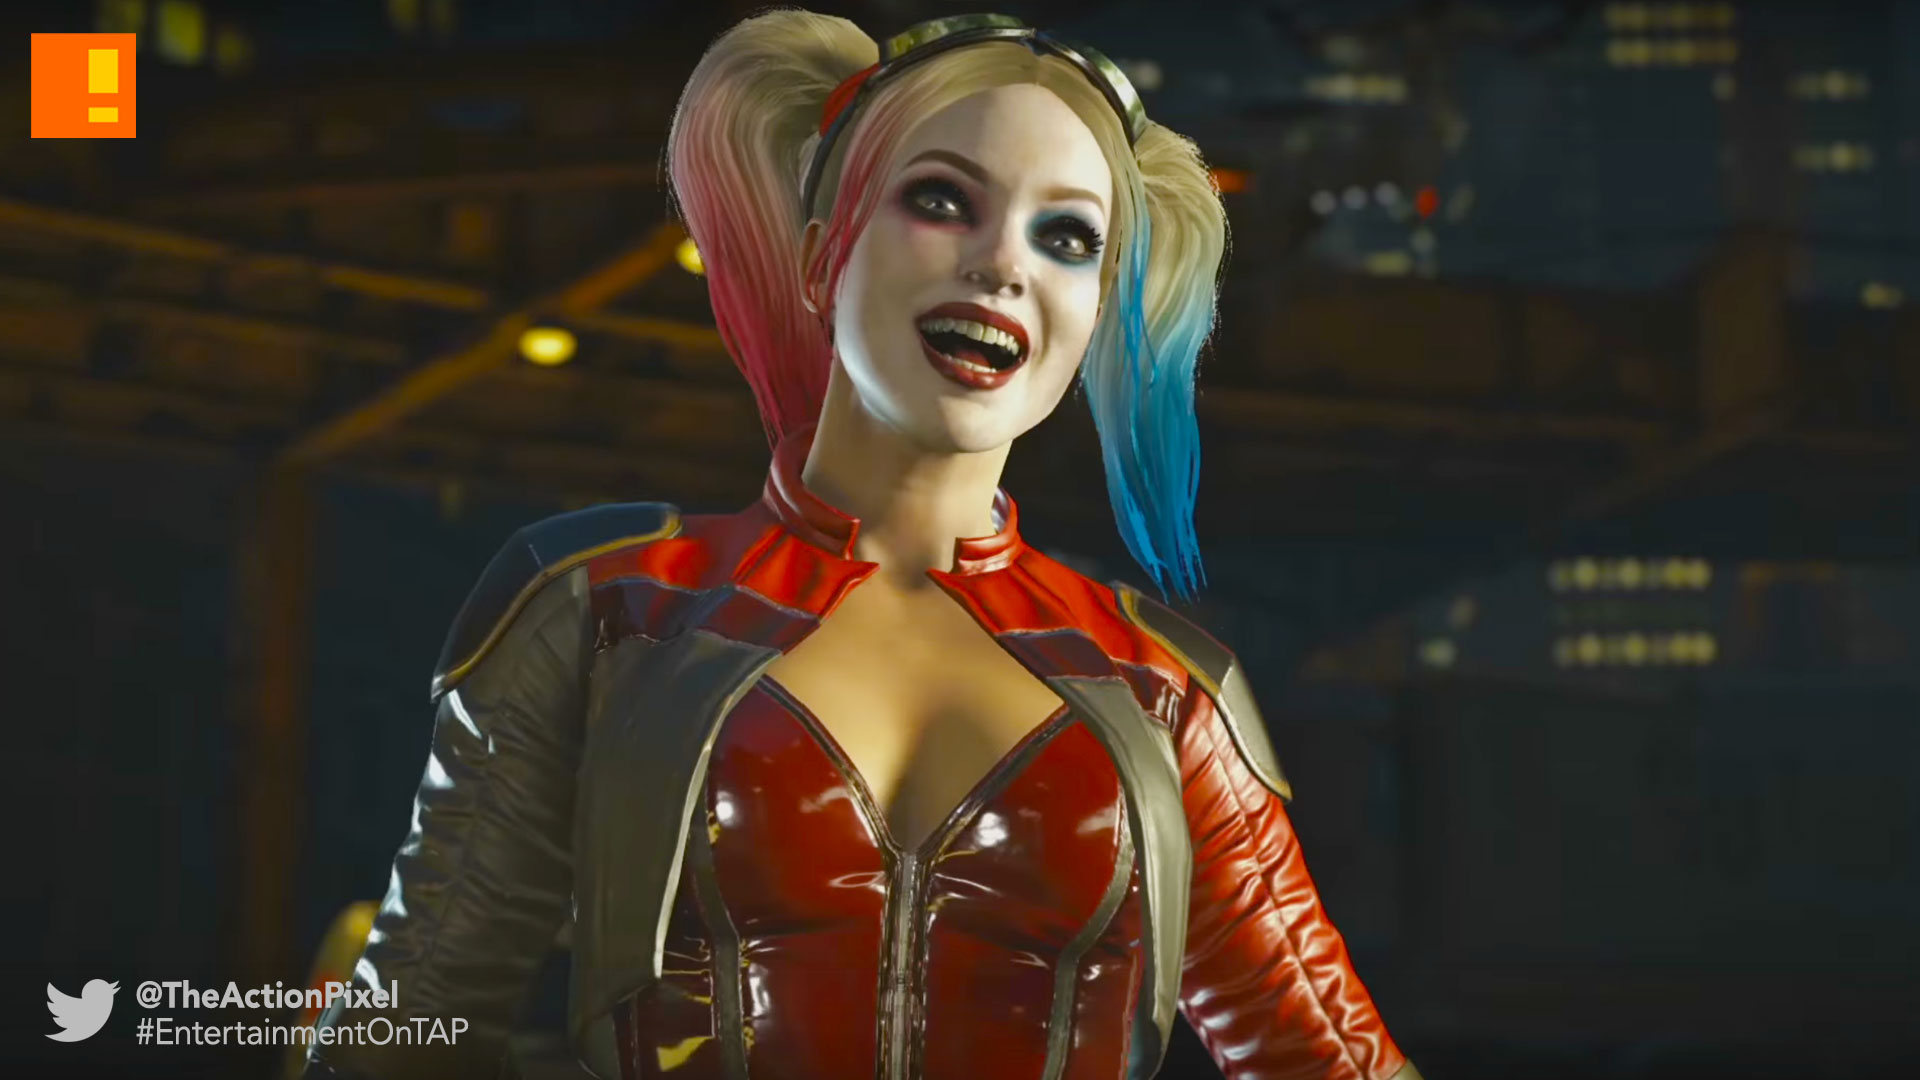 harley quinn , Injustice 2, deadshot, Injustice 2, the action pixel, entertainment on tap